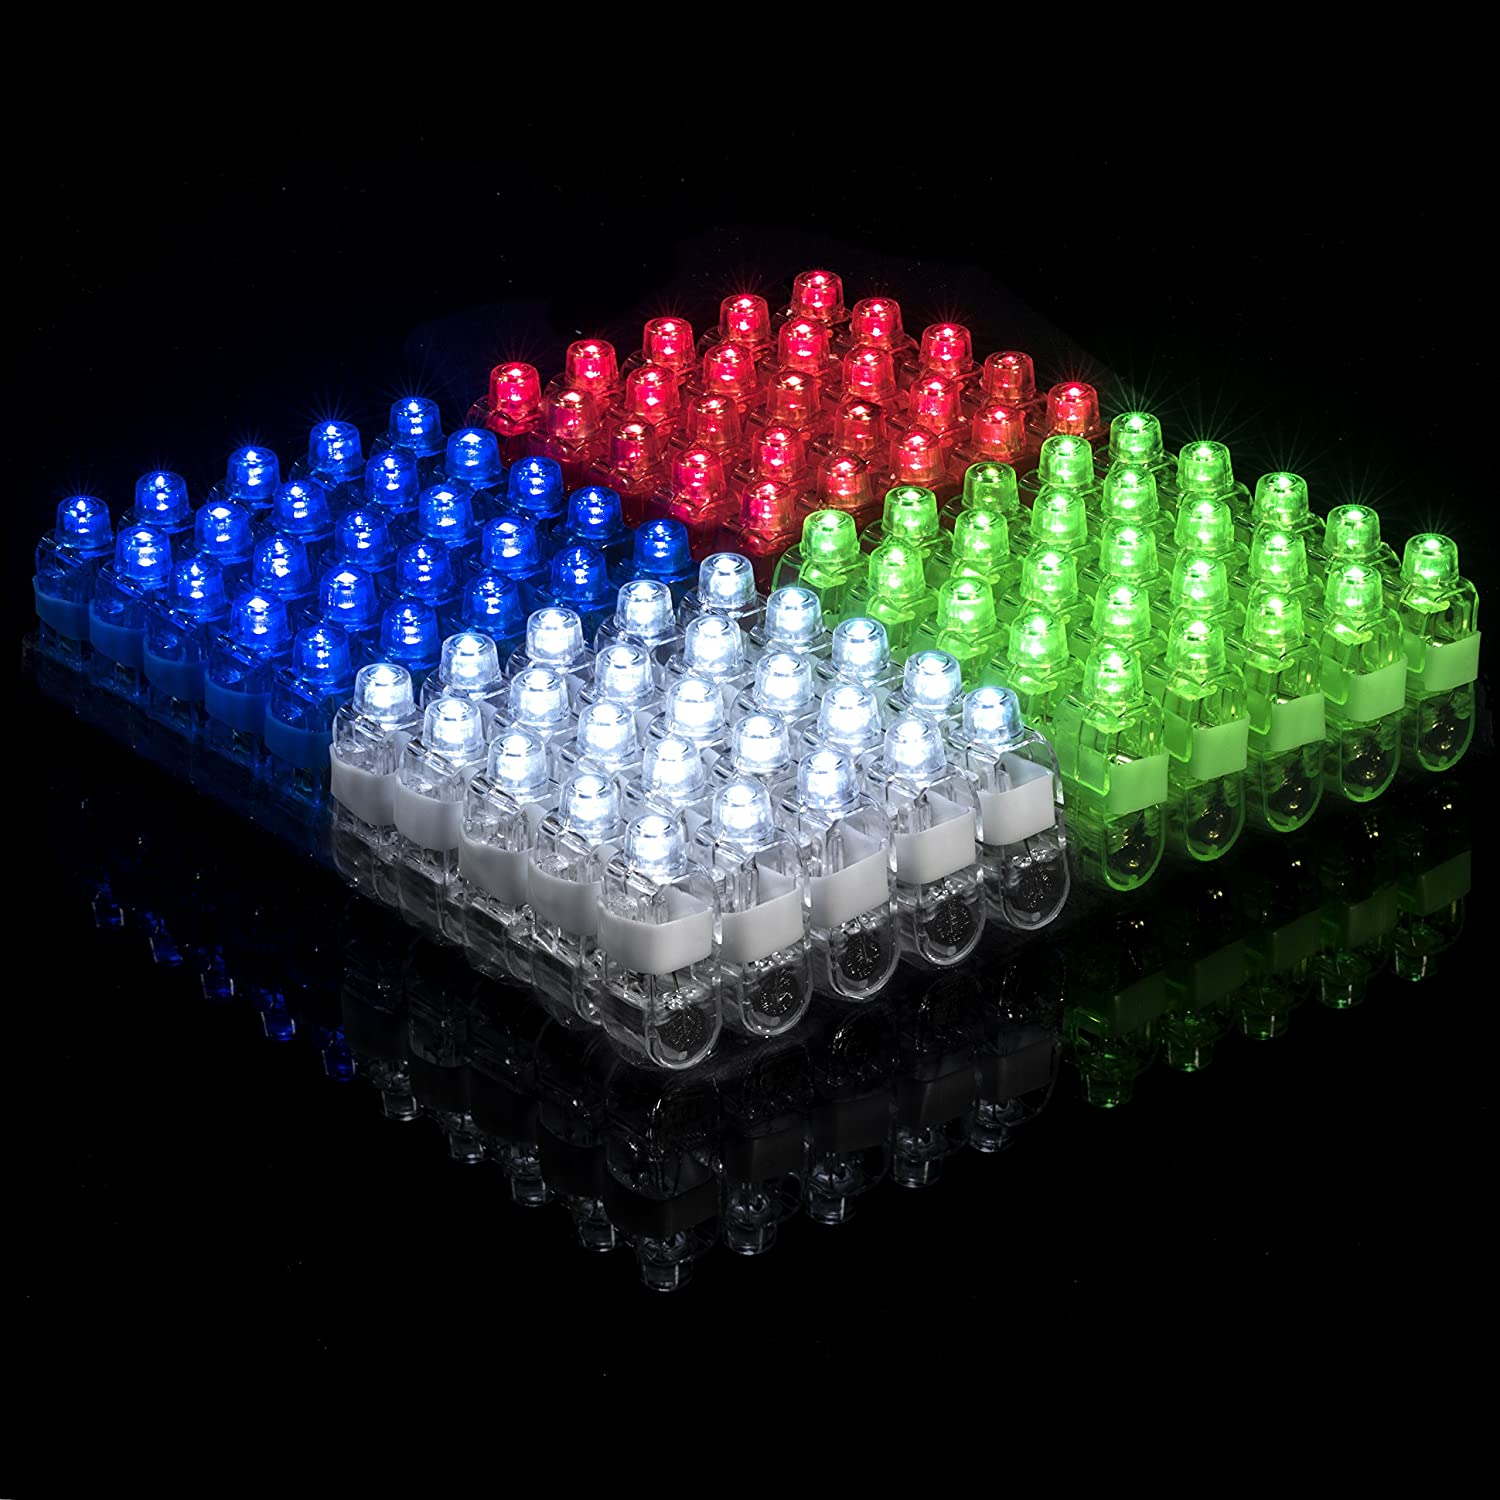 Light Up Rings LED Finger Lights 100pk – Glow Rings Bulk Party Favors for Kids Glow in The Dark Party Supplies Stocking Stuffers Rave Accessories